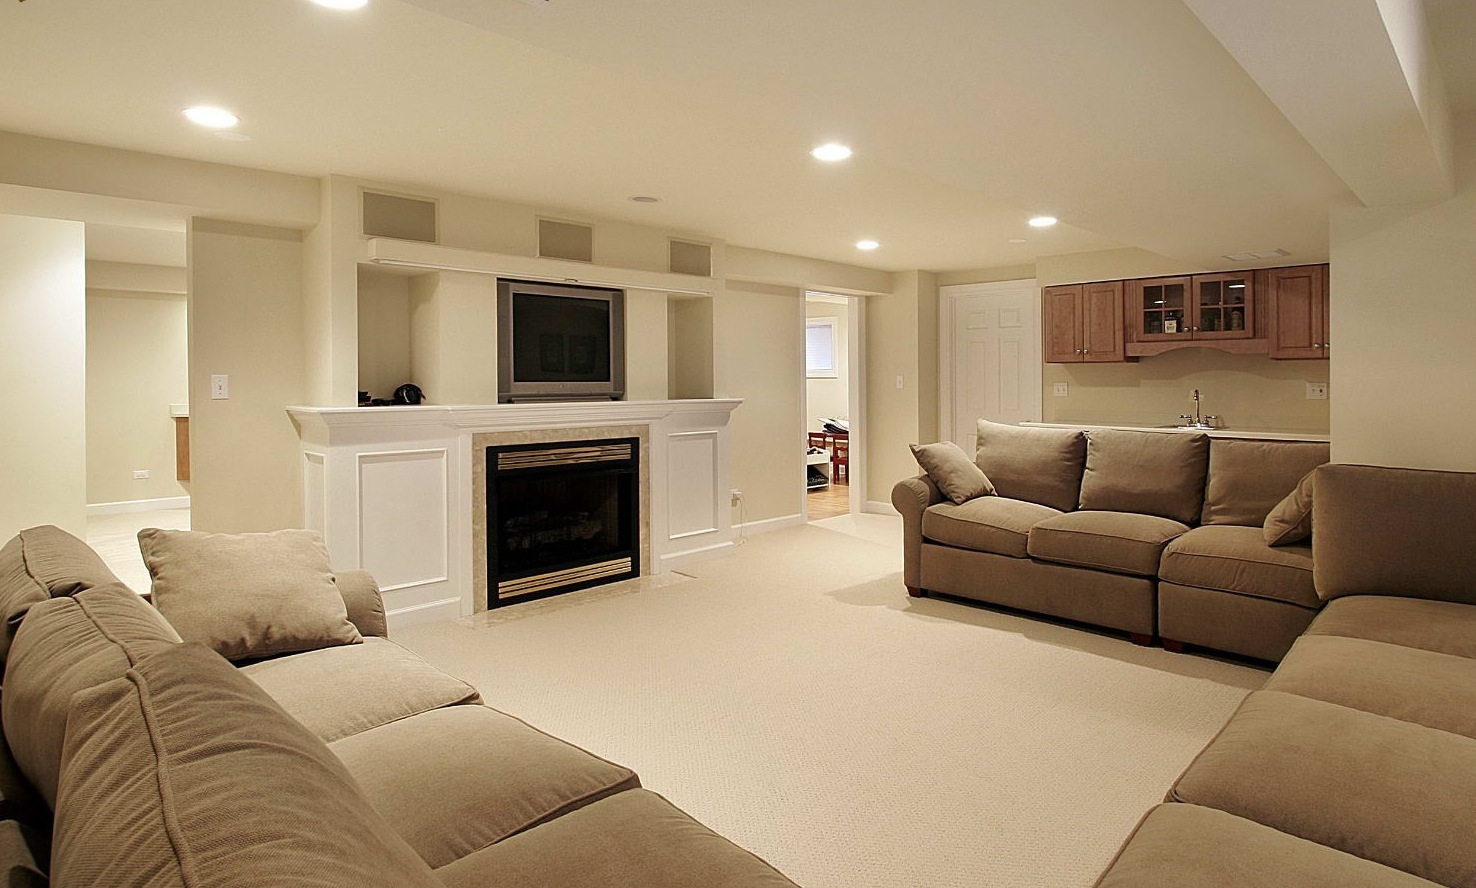 Home Basement Designs Decor 30 Basement Remodeling Ideas & Inspiration